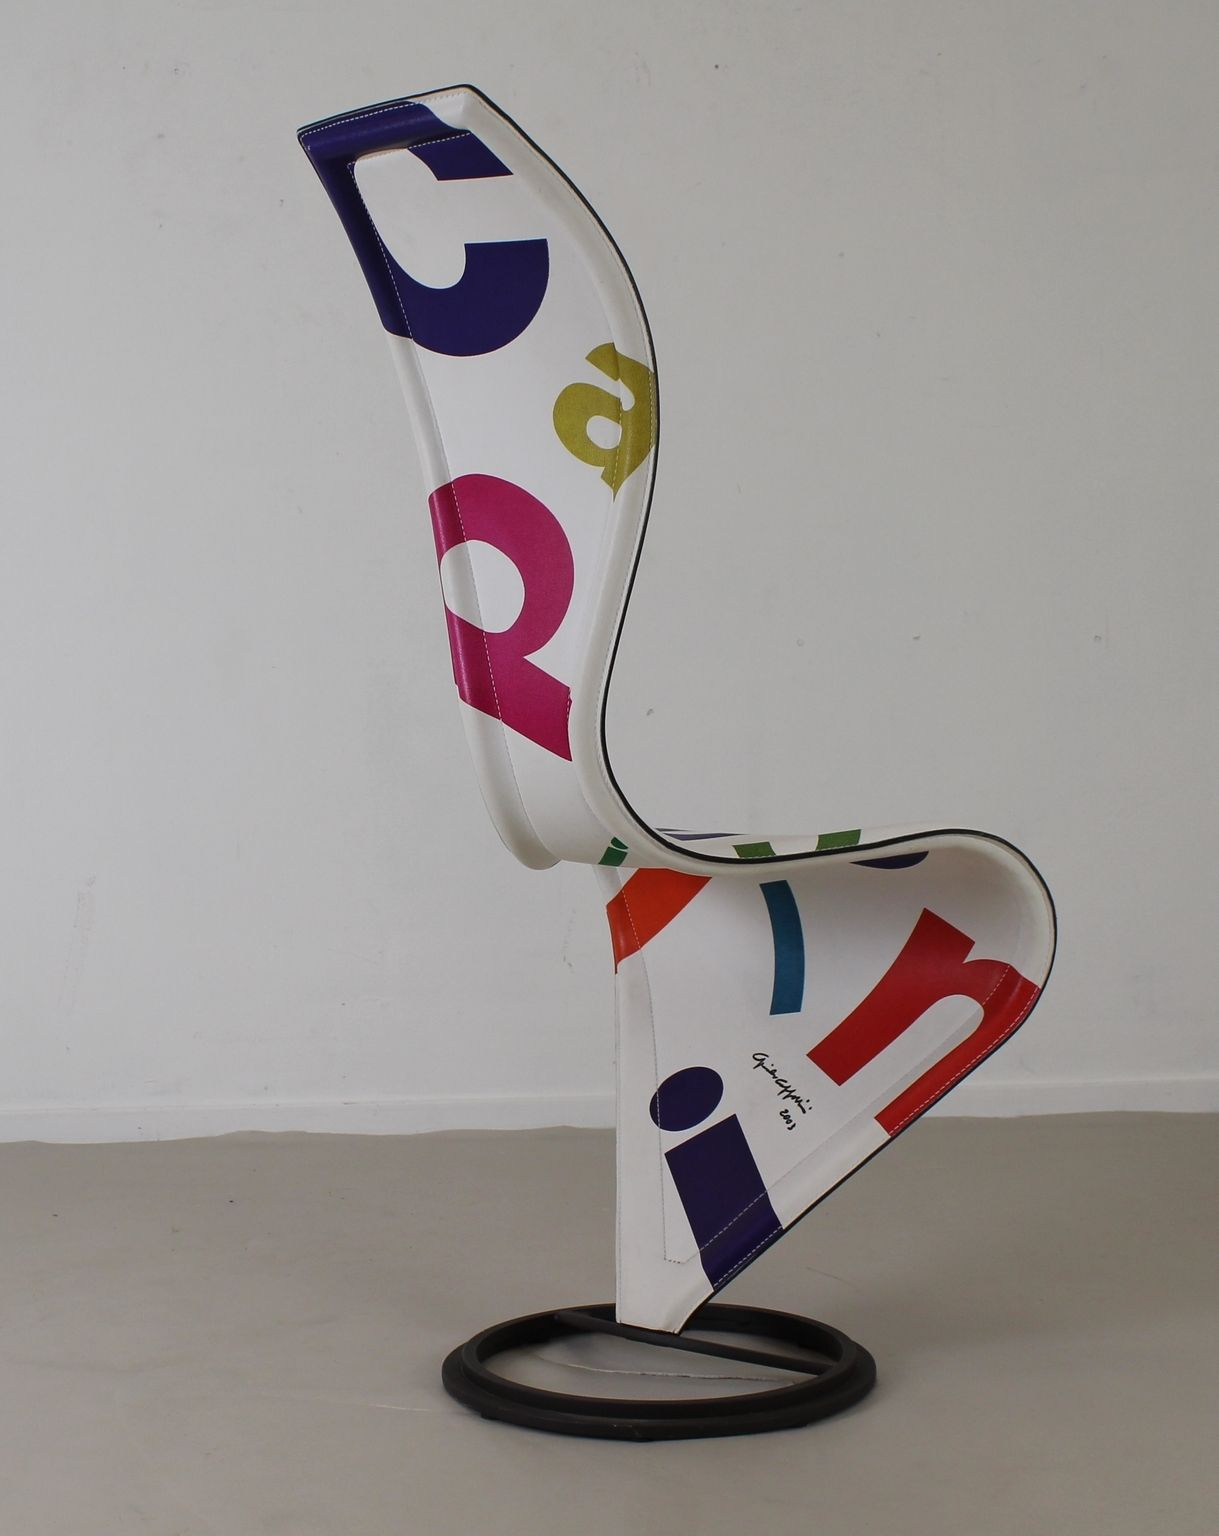 Limited Edition S Chair By Tom Dixon For Cappellini Signed By Giulio Cappellini 1stdibs Side Chairs Chair Cappellini